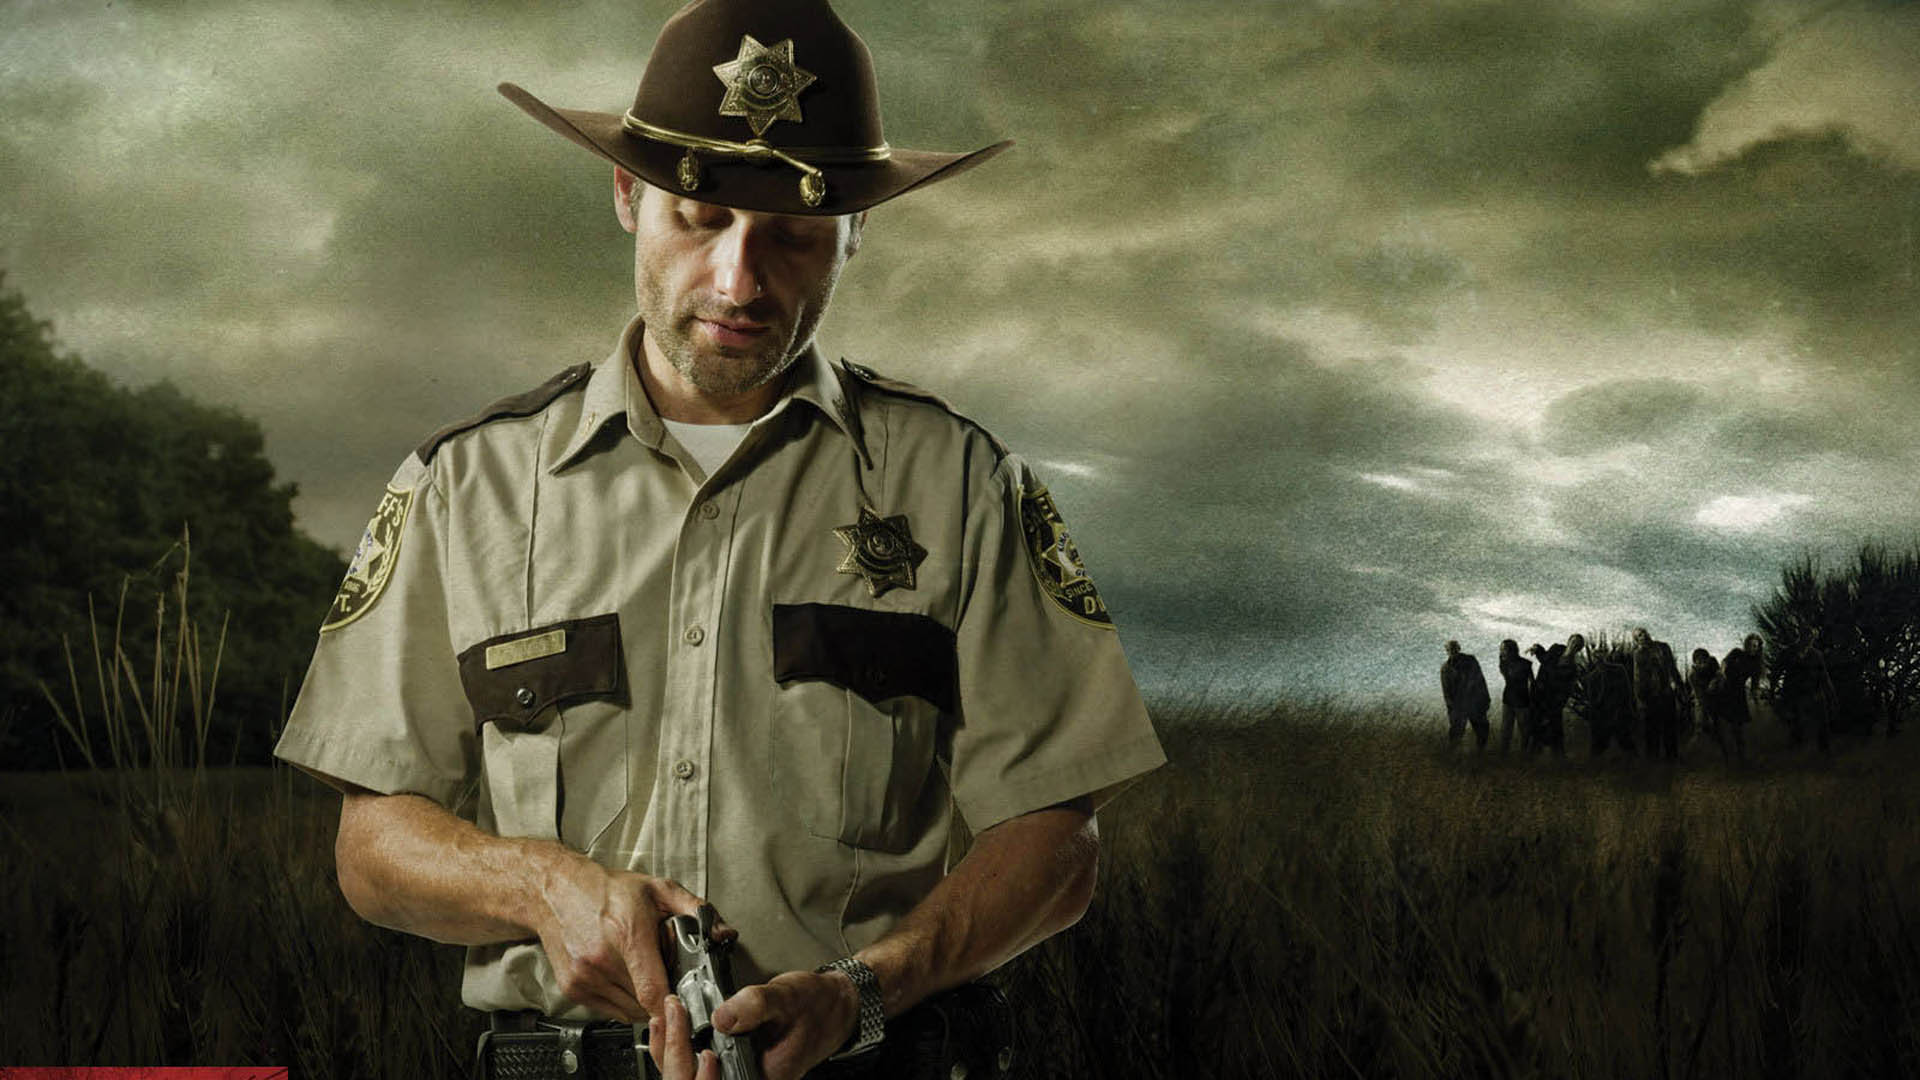 The walking dead wallpapers 1920x1080 wallpaper cave walking dead wallpaper 1920x1080 voltagebd Choice Image